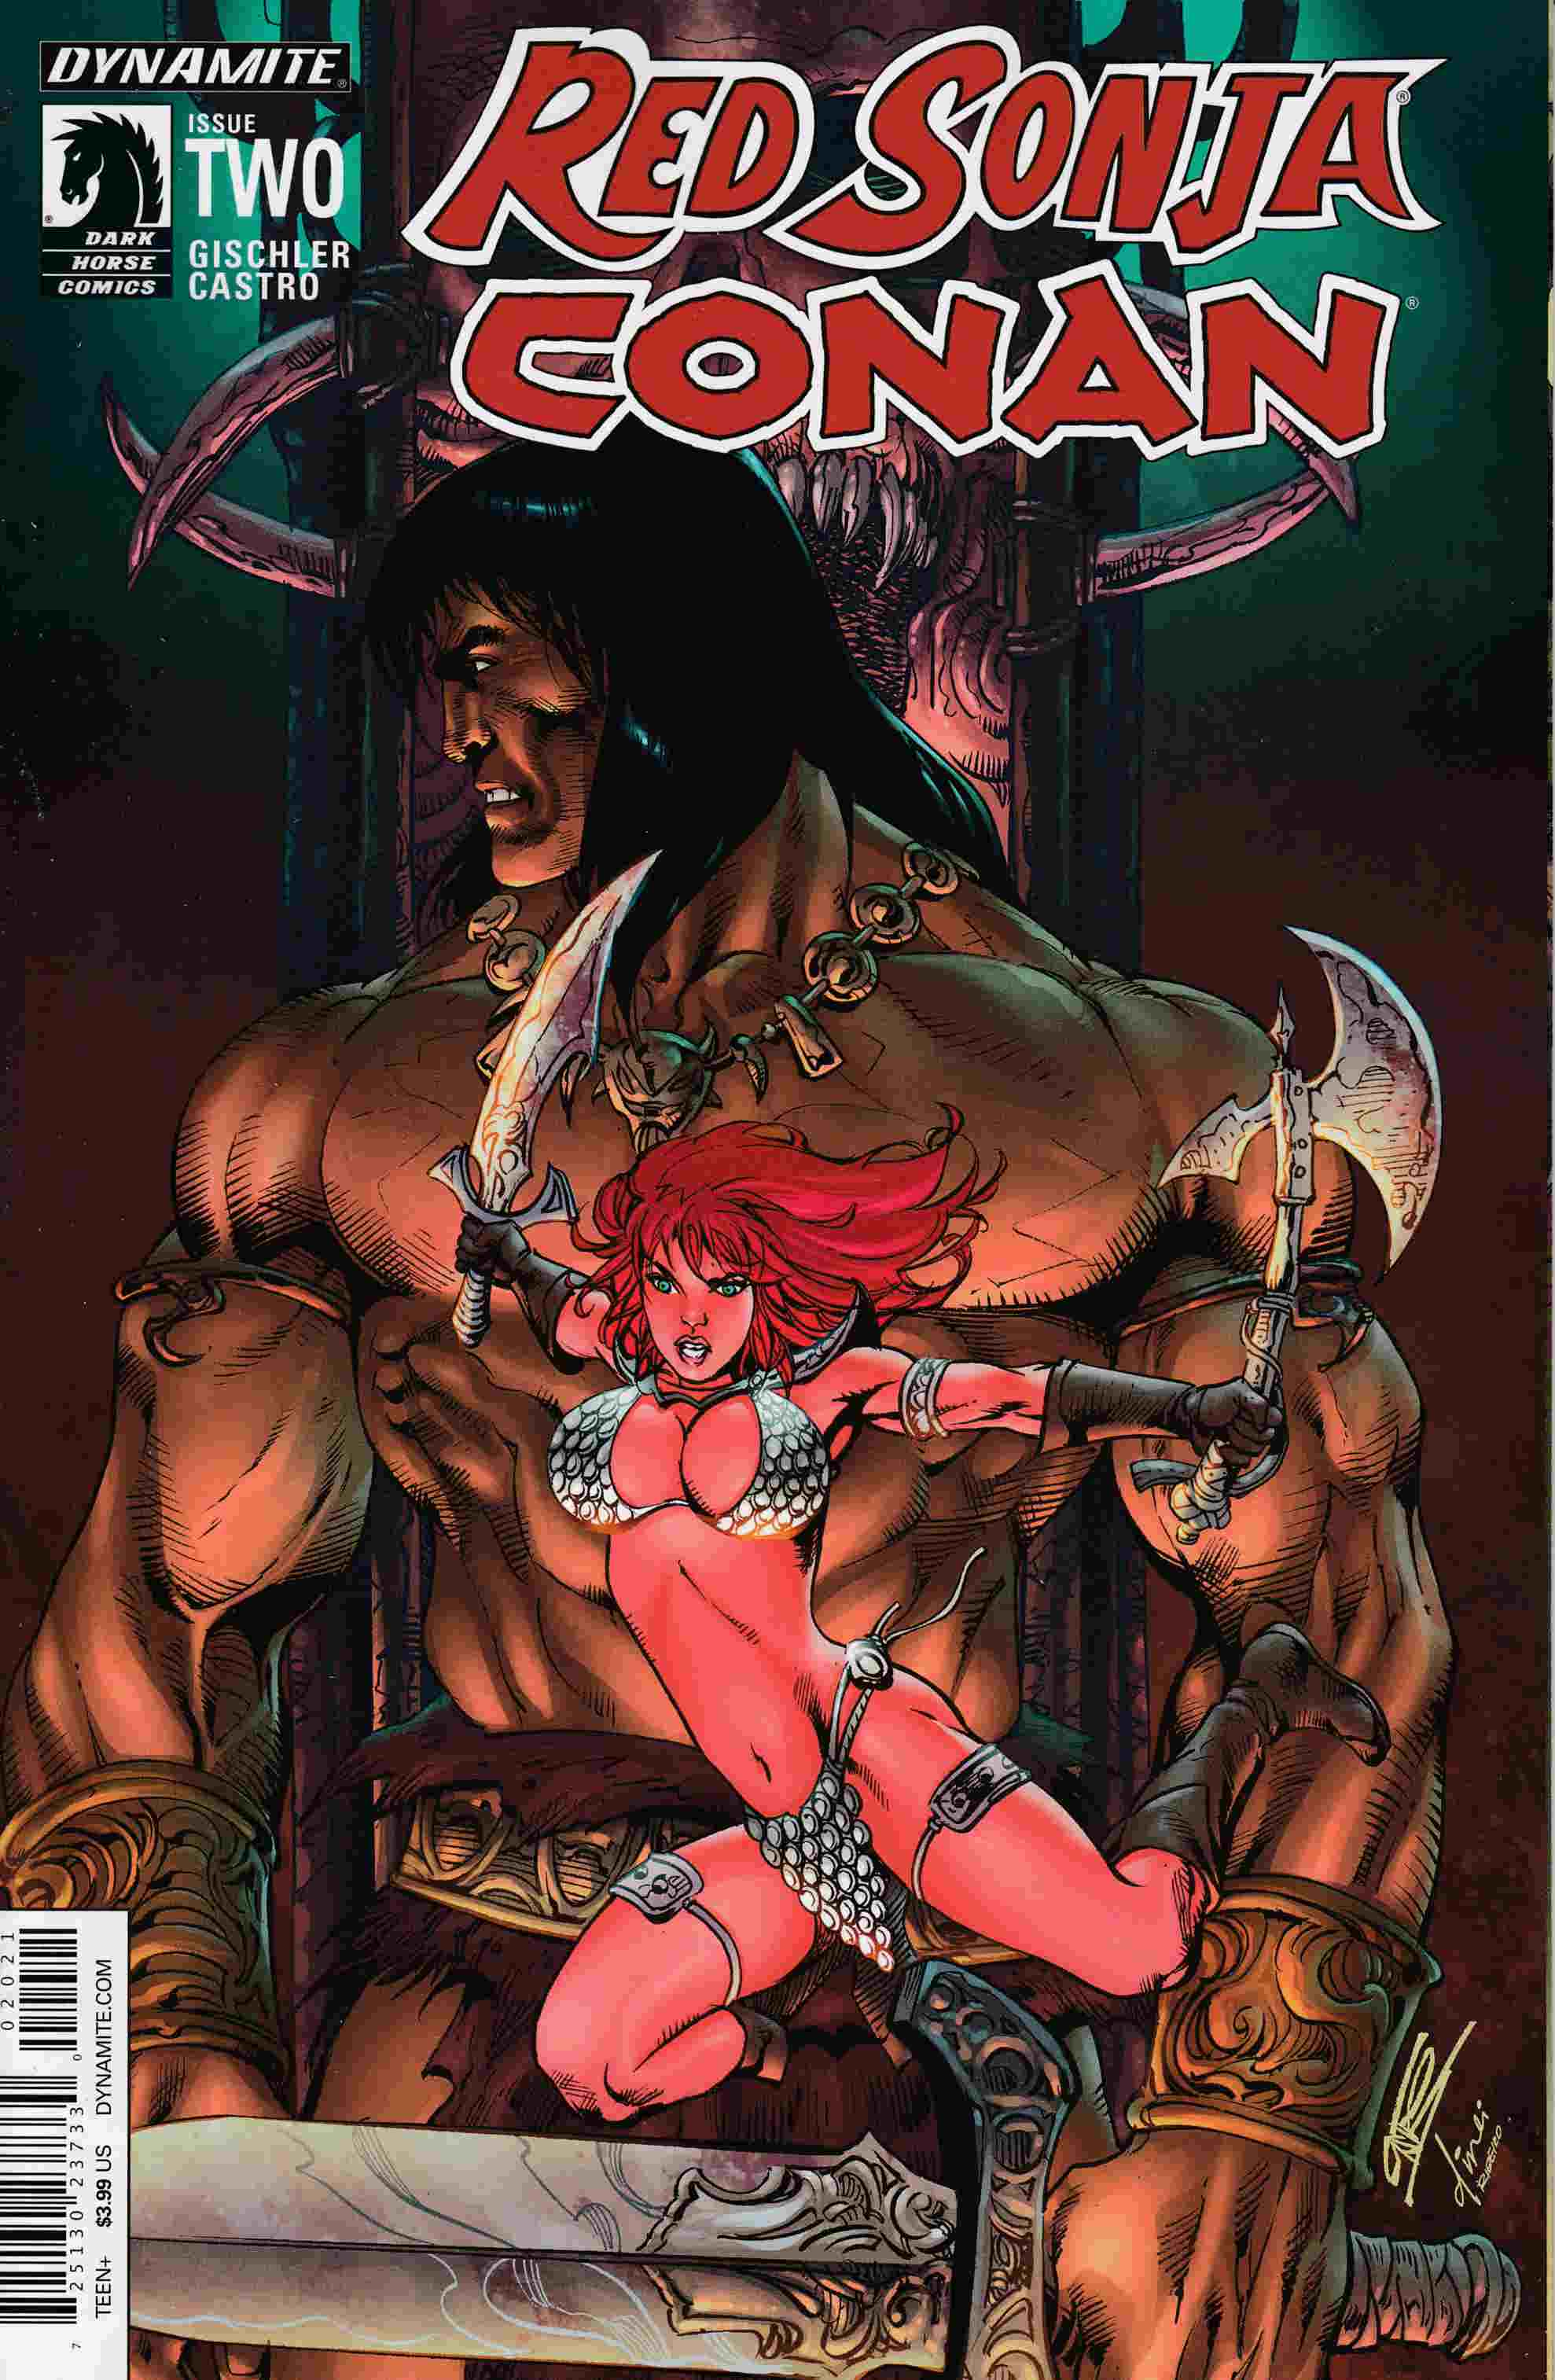 Red Sonja Conan #2 Cover B- Subscription [Dynamite Comic]